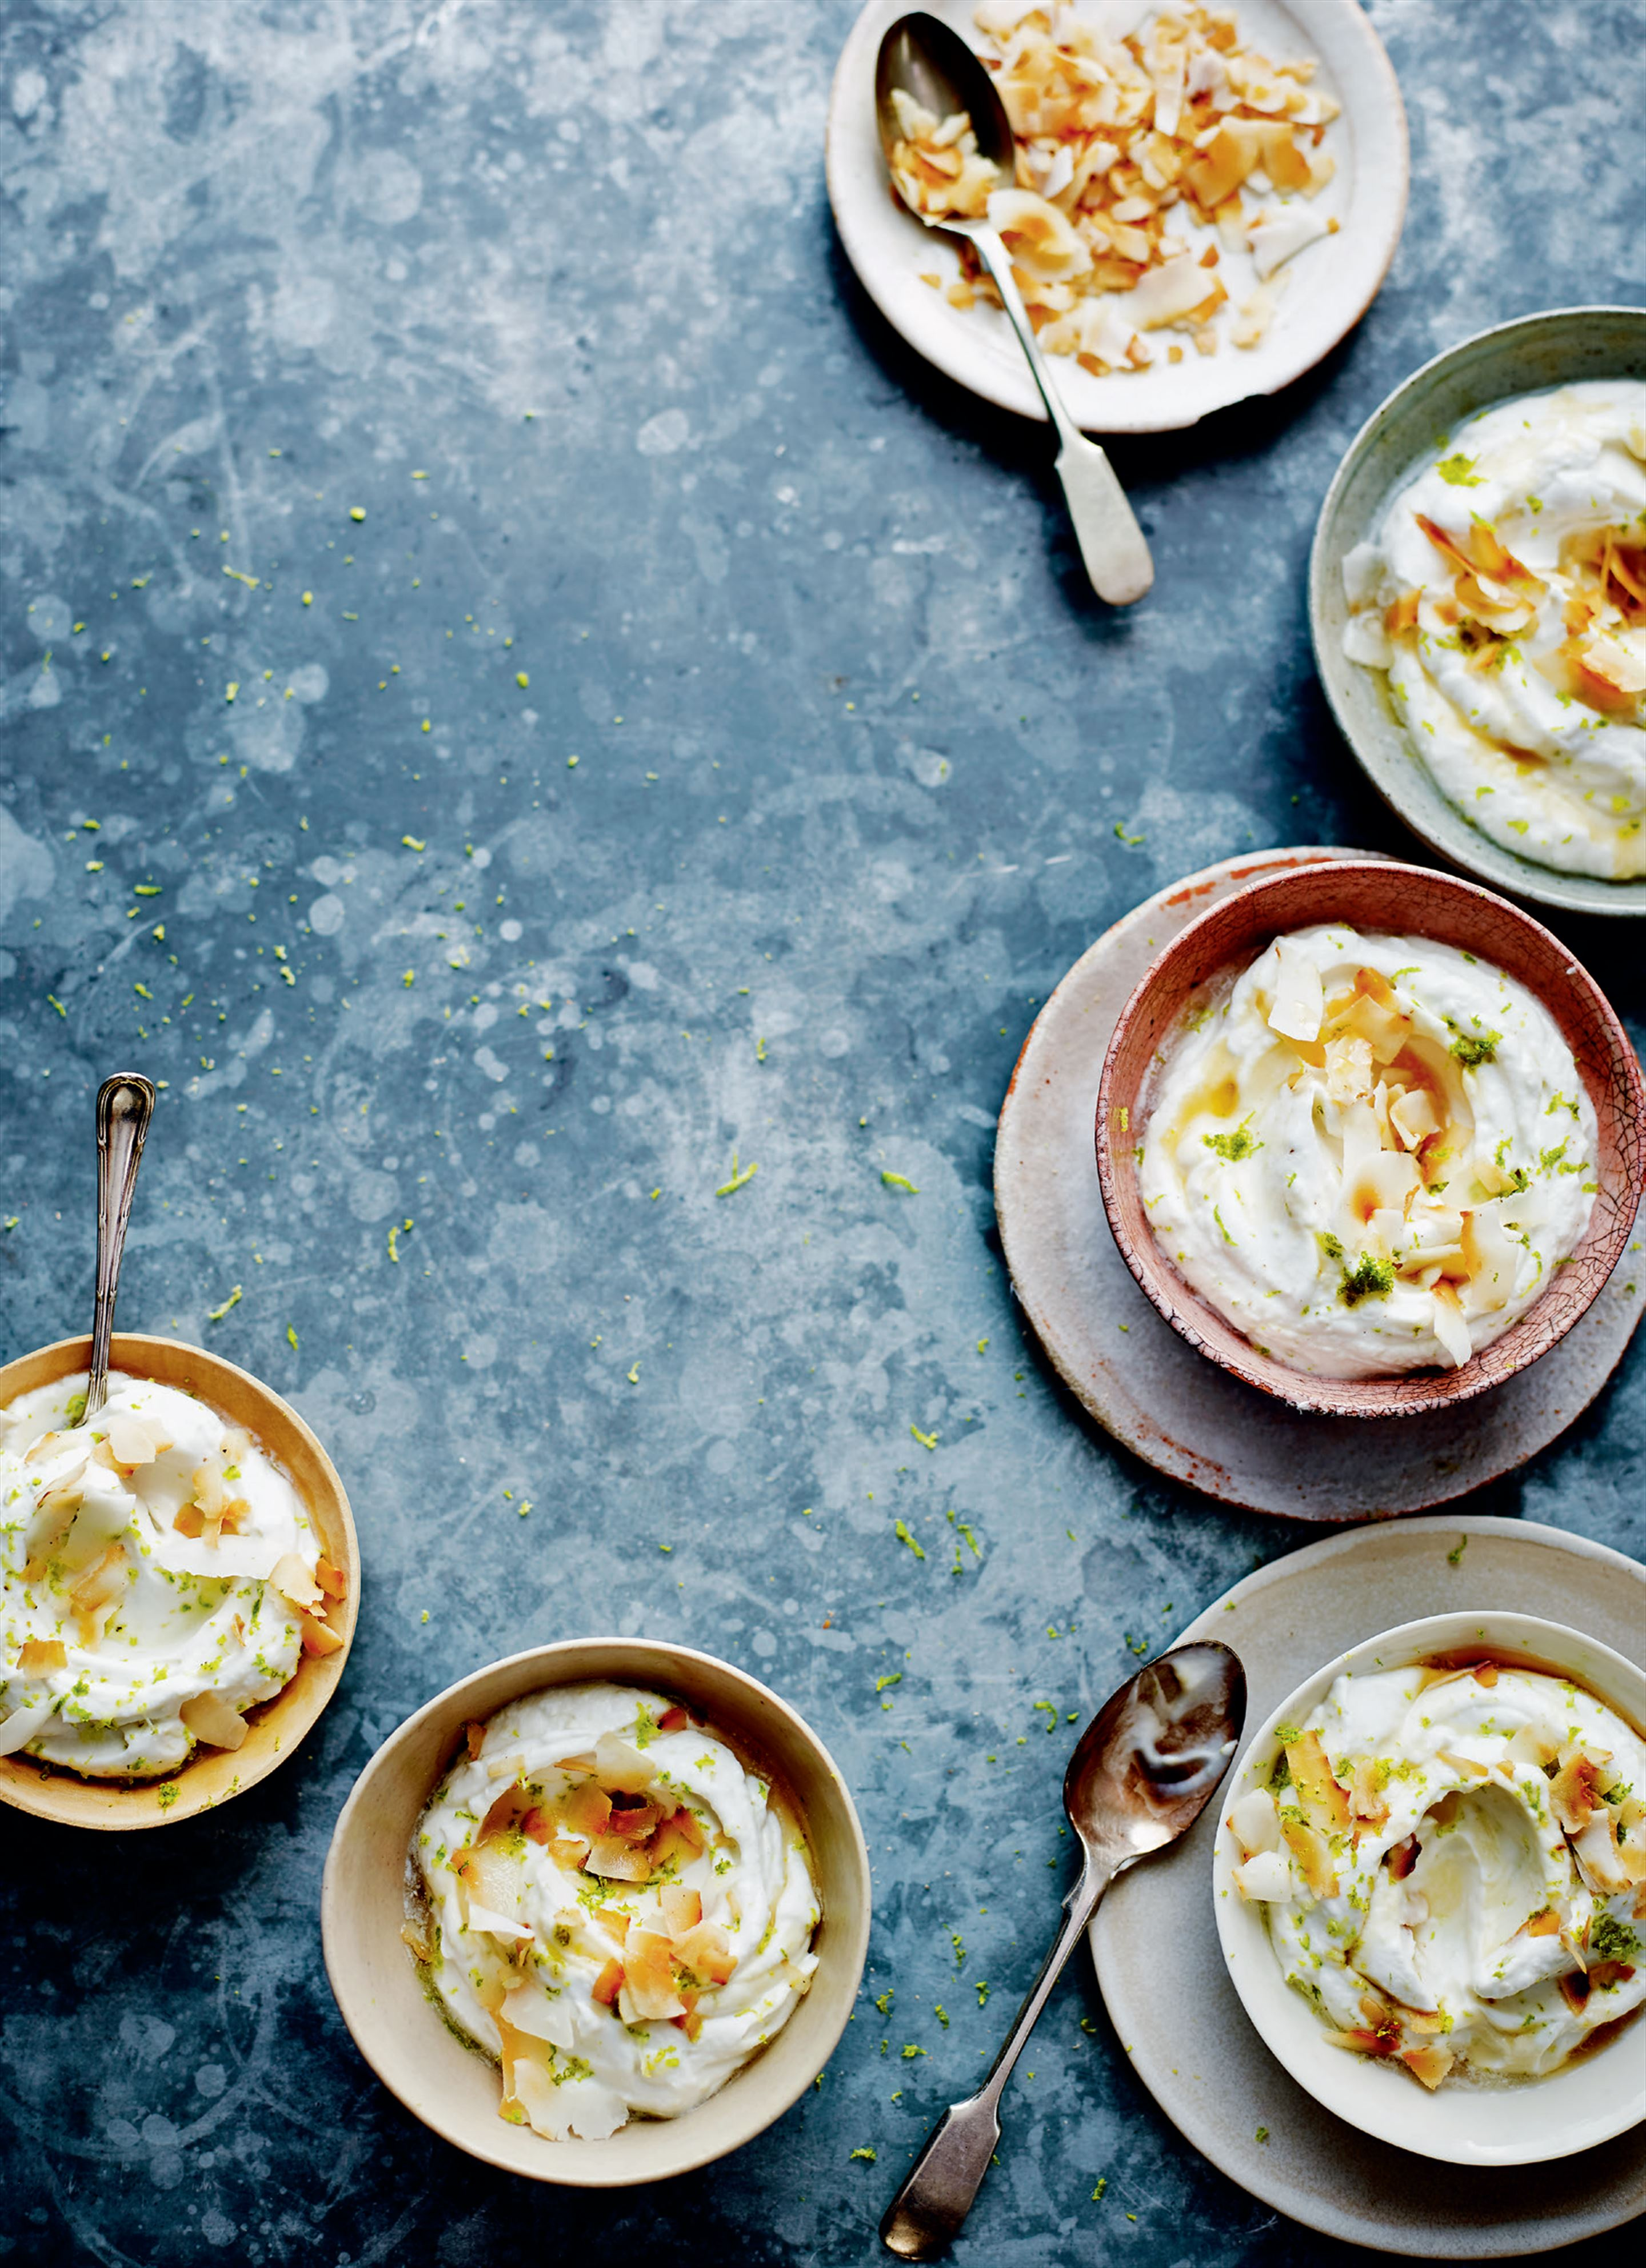 Lime and coconut syllabub